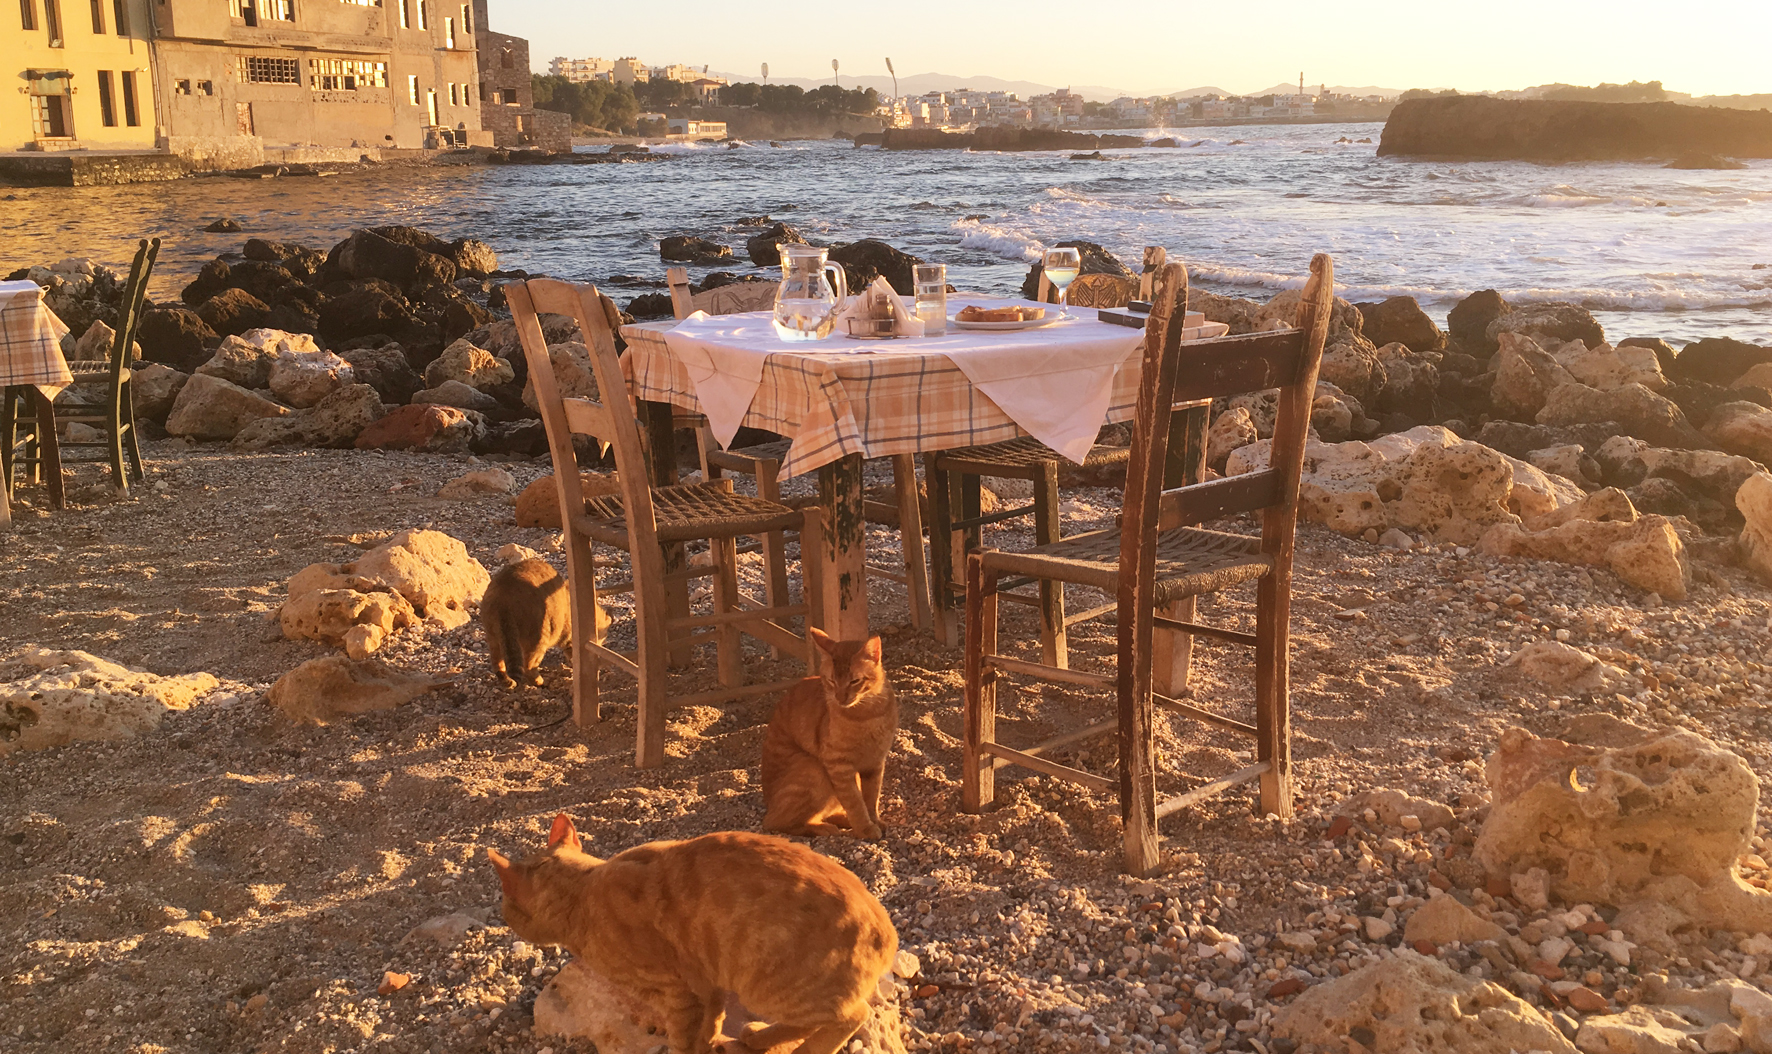 Fish dinner with feline friends in Tabakaria.